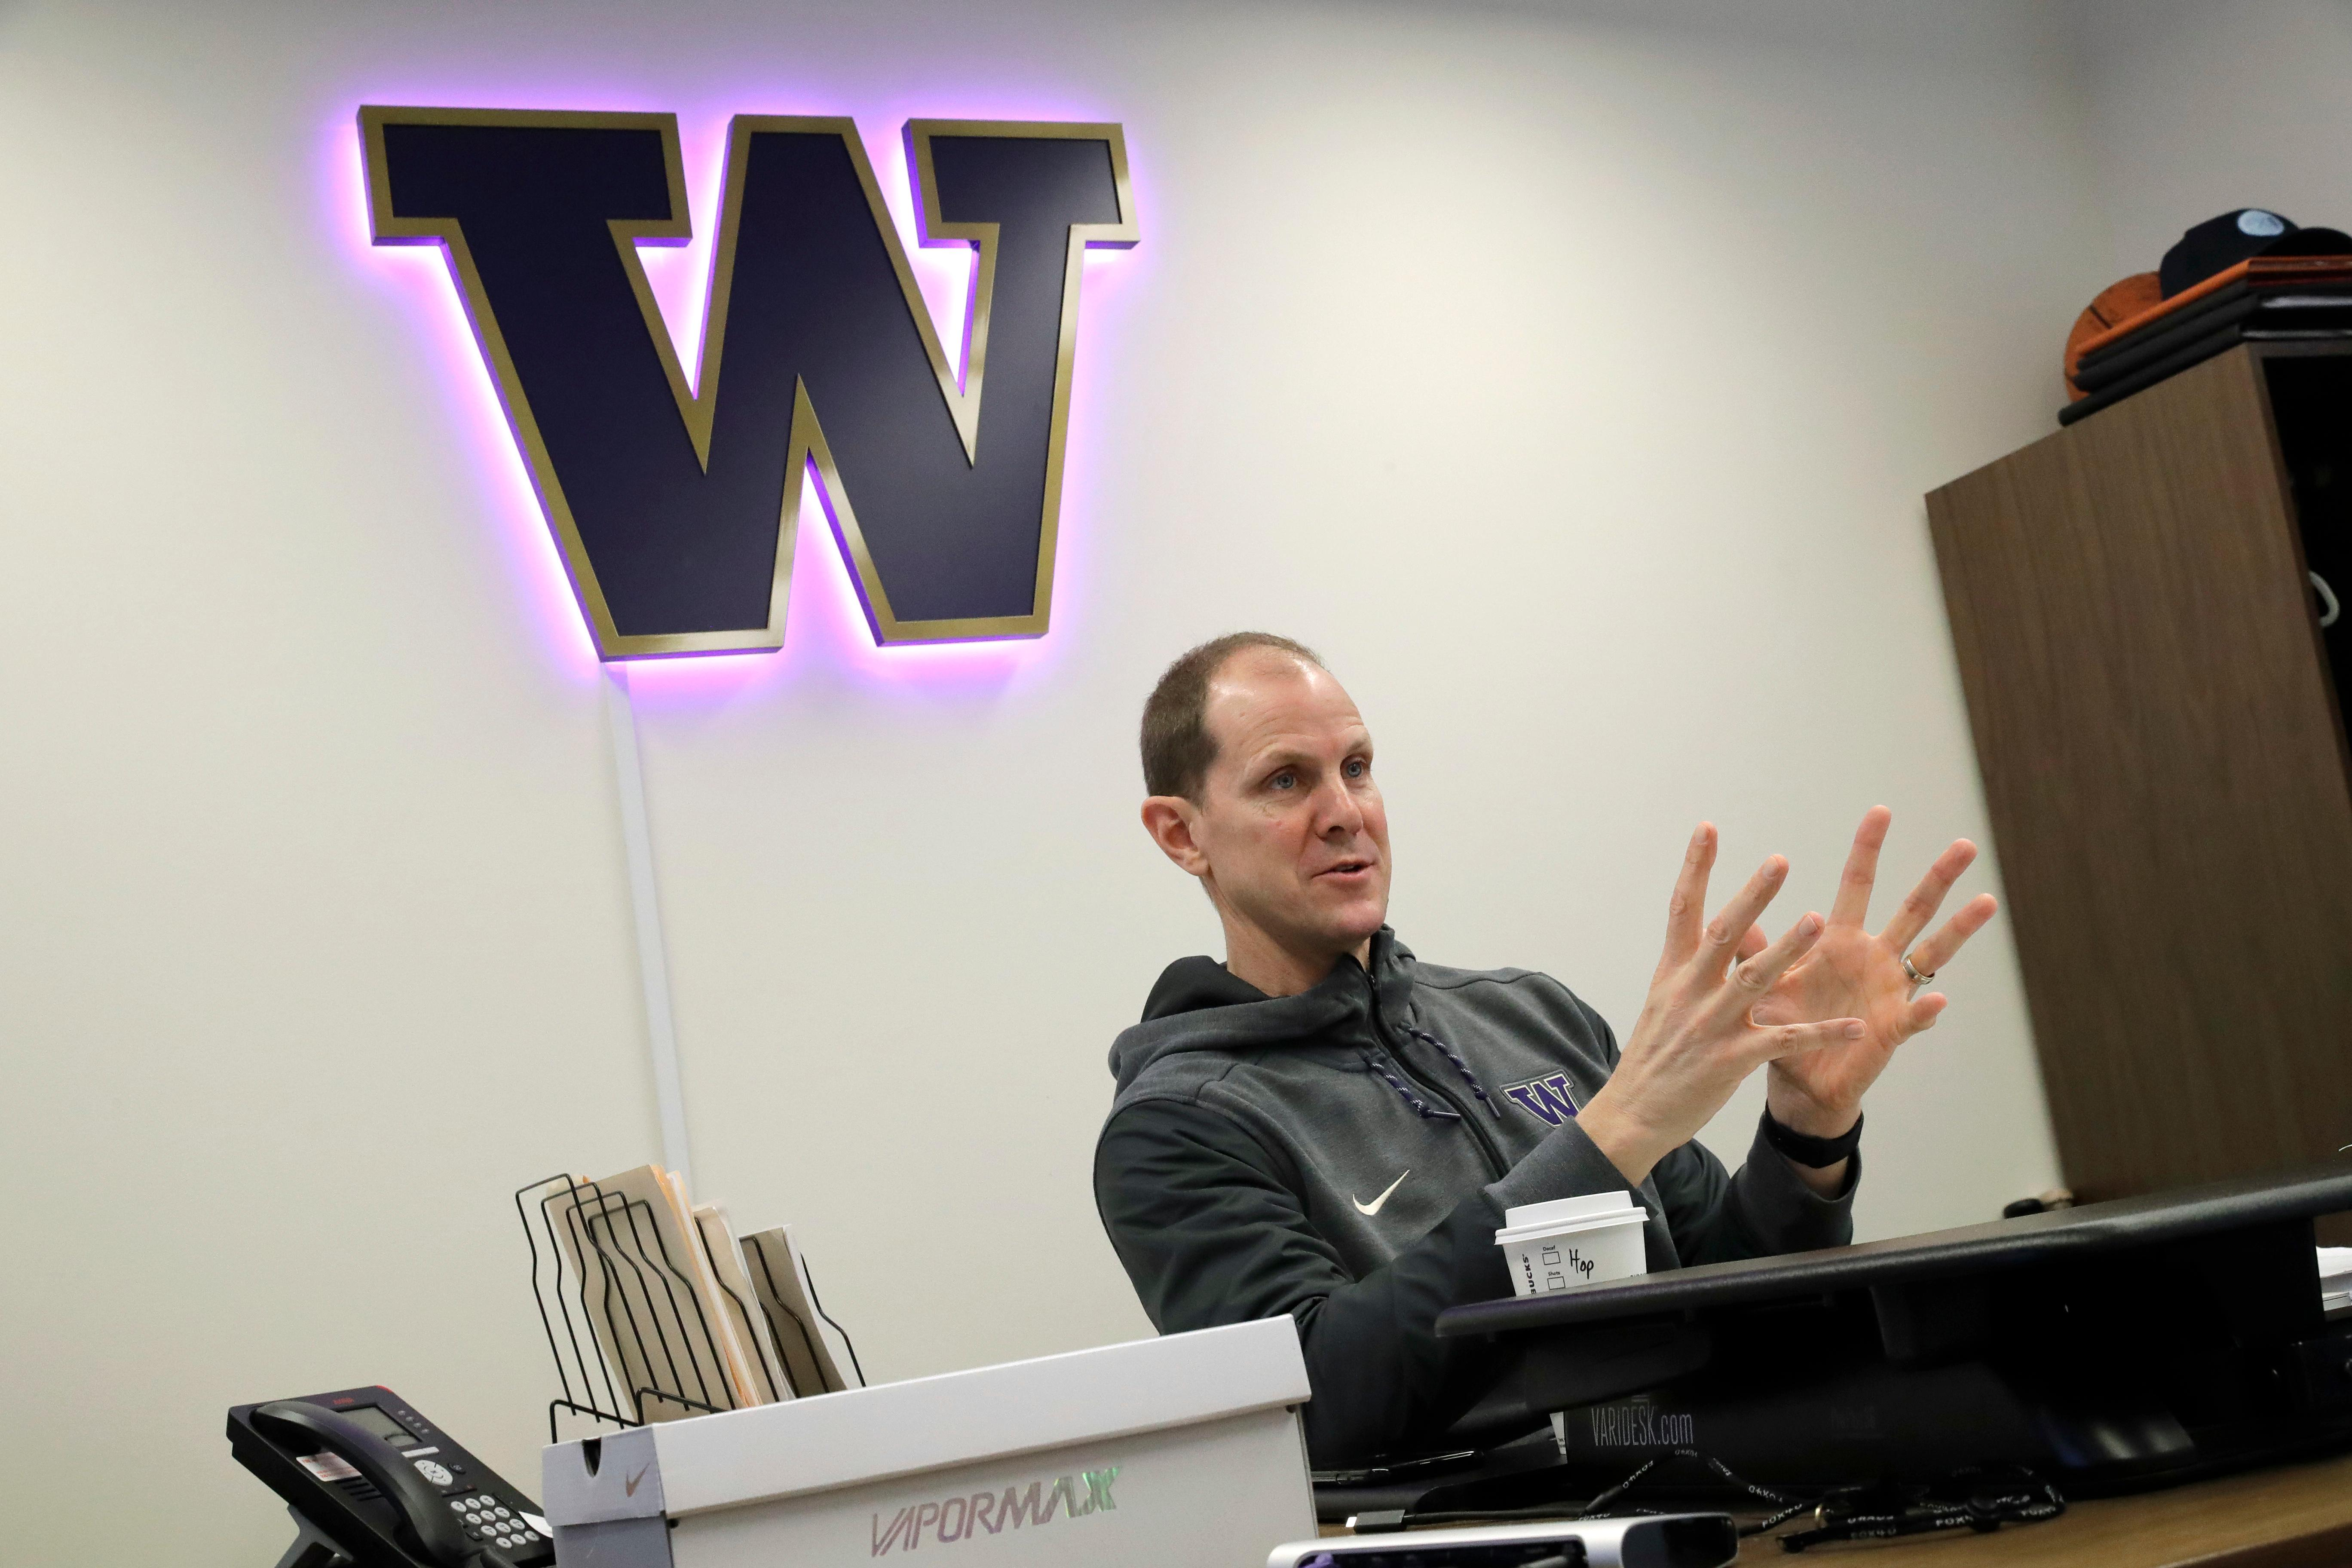 In this Sunday, Jan. 28, 2018 photo, Washington head coach Mike Hopkins sits in his office during a meeting with TV broadcasters before an NCAA college basketball game against Washington State in Seattle. One of the most surprising stories in college basketball is what Hopkins is doing in his first season at Washington and how the Huskies are in the conversation for an NCAA bid entering February. (AP Photo/Ted S. Warren)